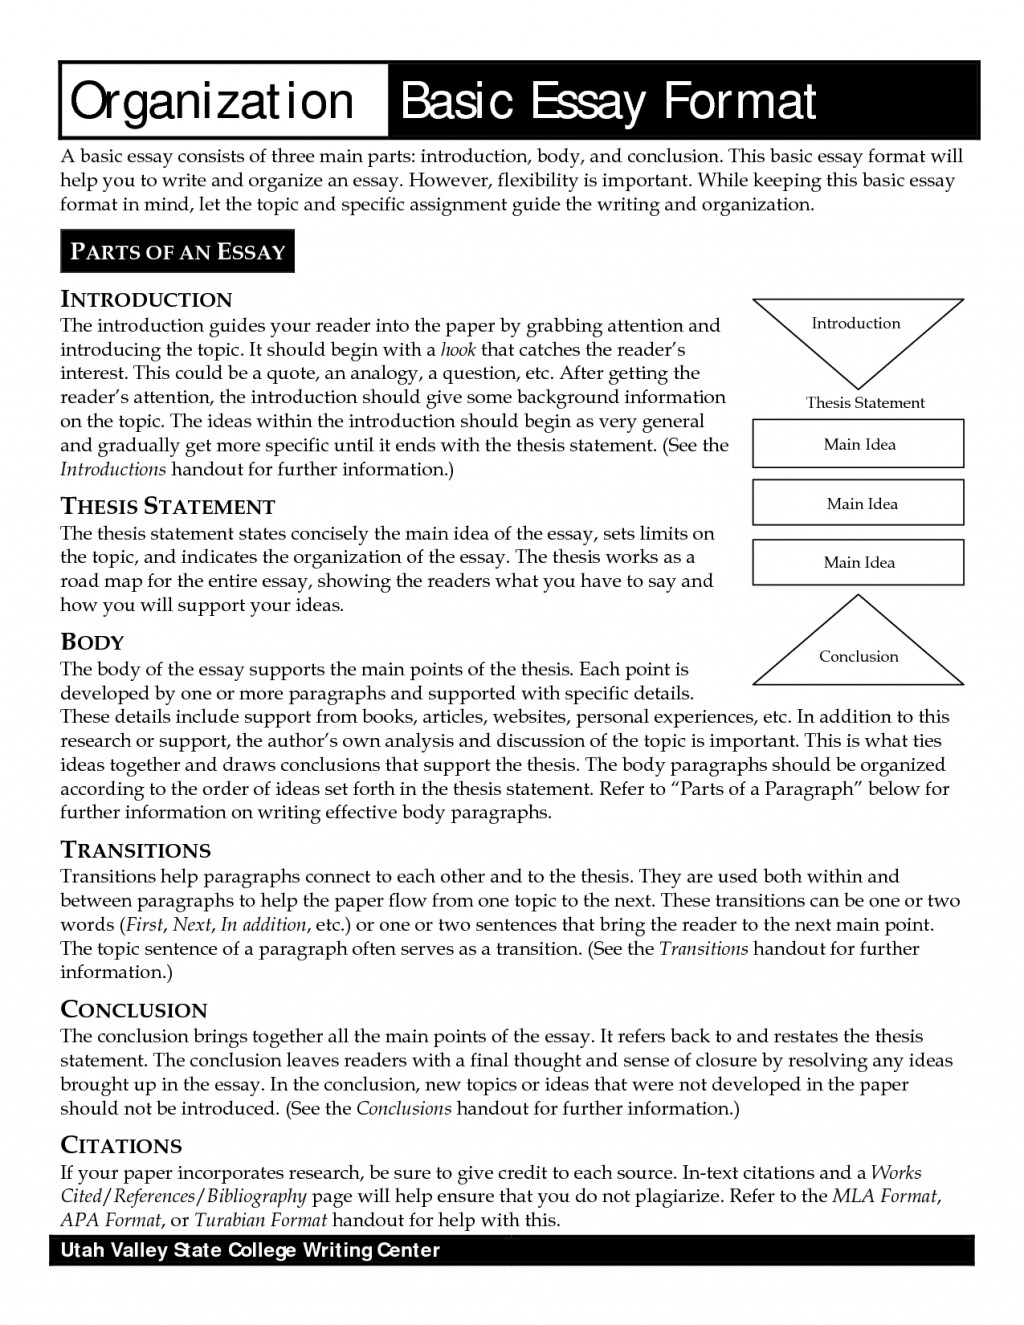 017 Standard Essay Format Get Online Example Write An Surprising Argumentative Sample In Which You State And Defend Large